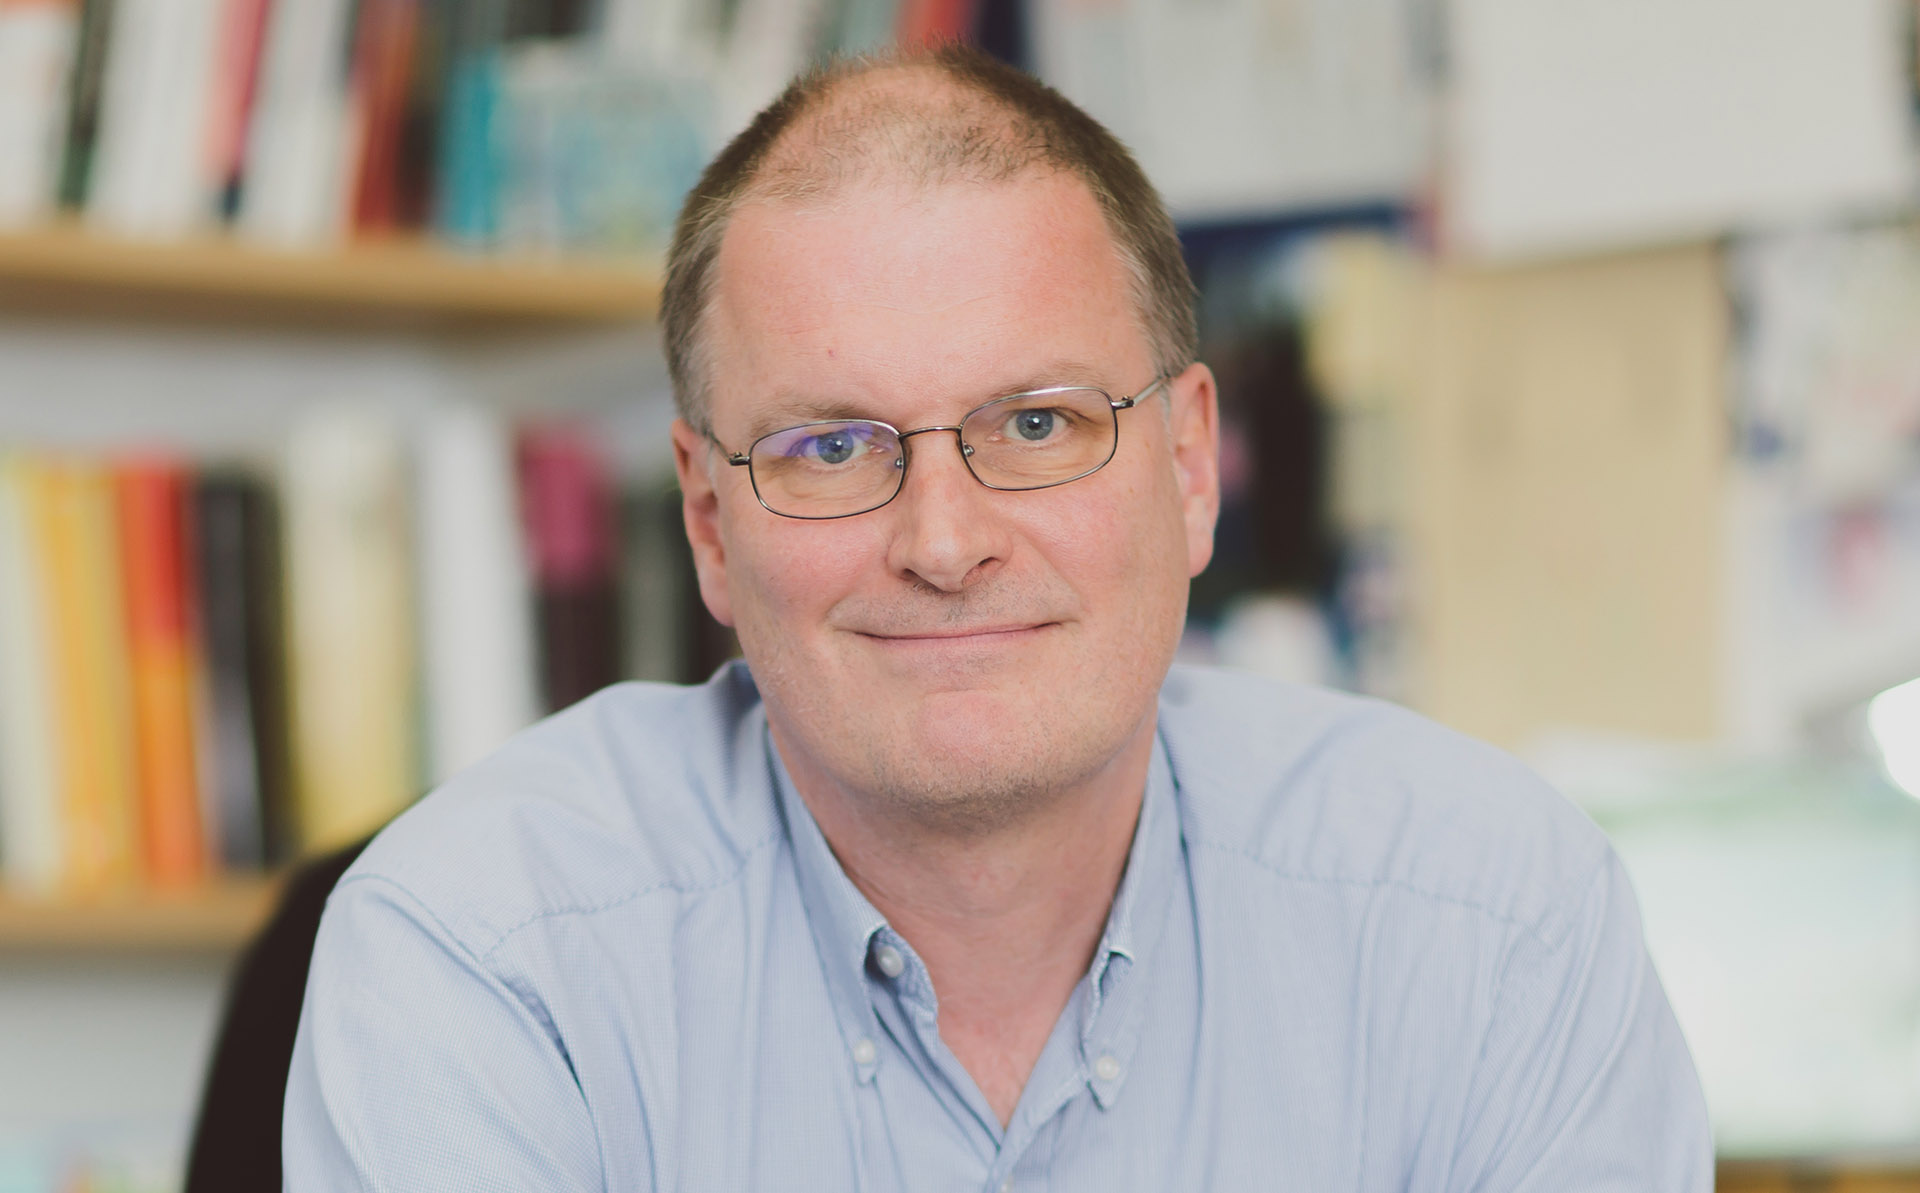 Professor Michael Wooldridge appointed to Programme Co-Director for Artificial Intelligence at The Alan Turing Institute